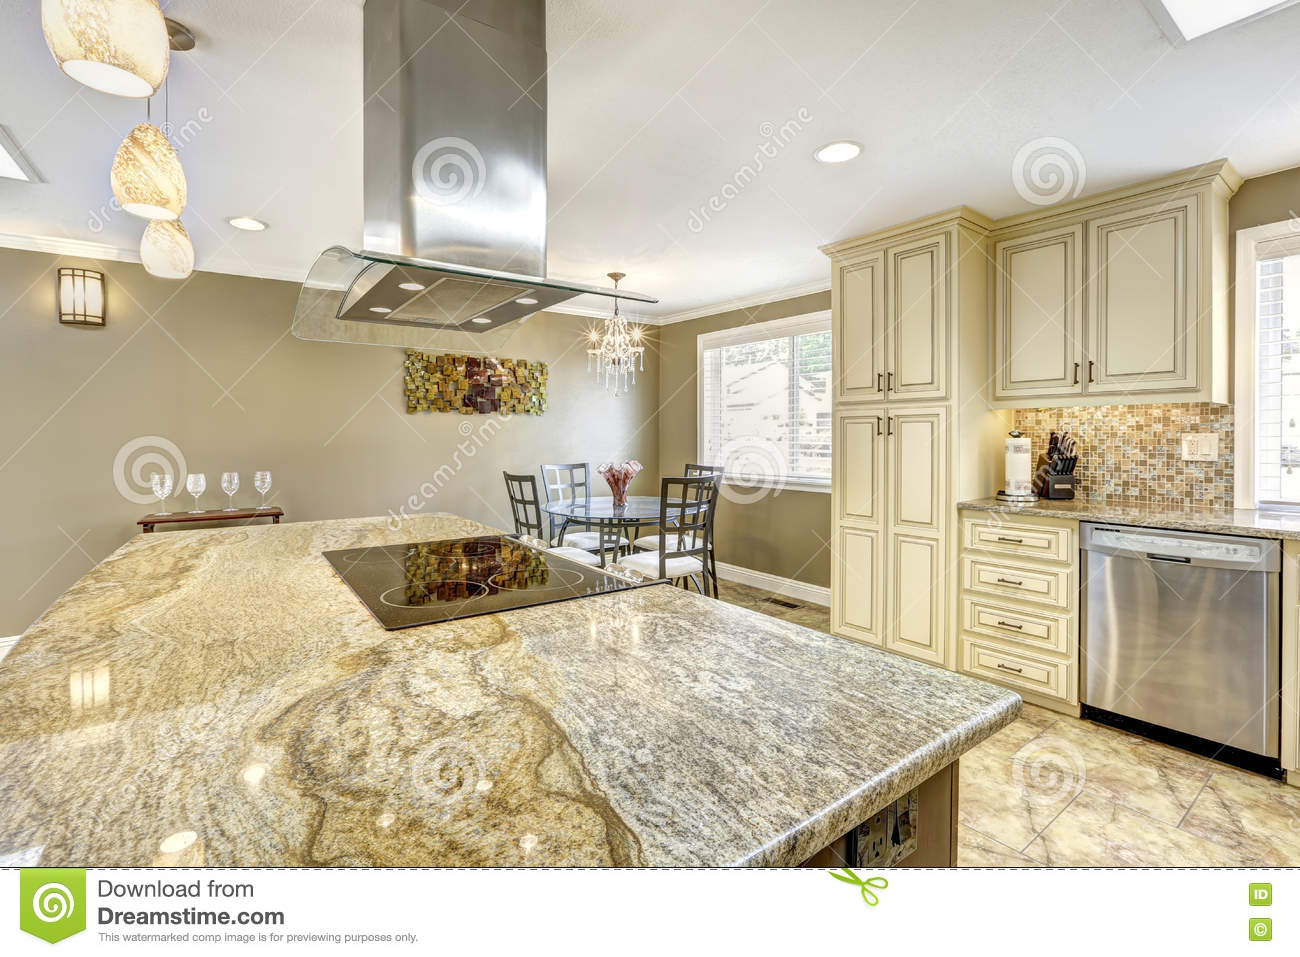 Luxury kitchen interior in light beige color stock photo Luxury kitchen flooring